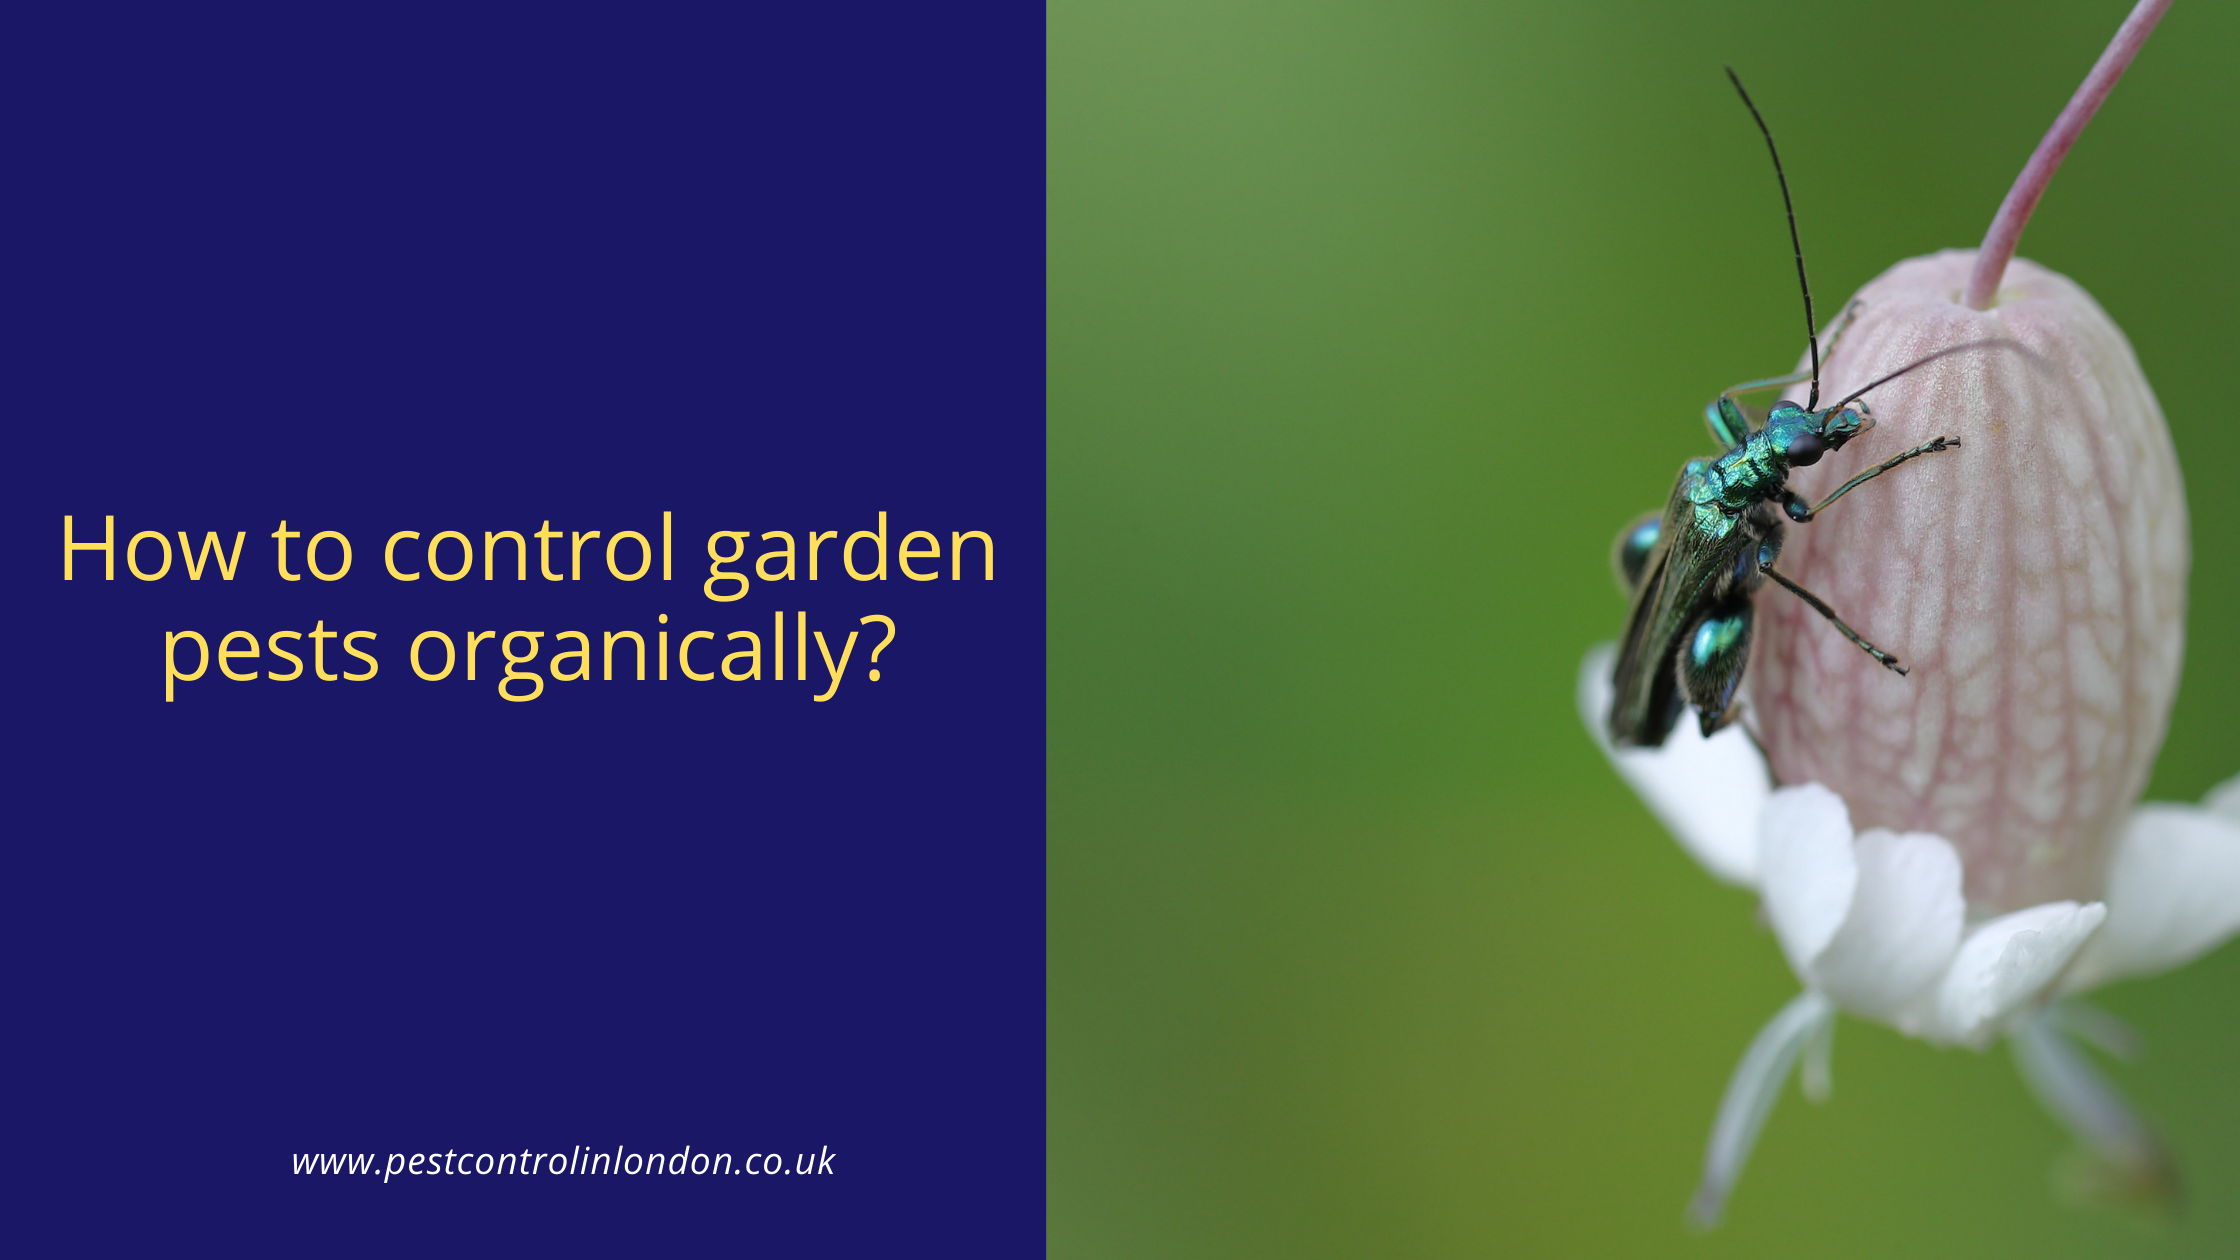 How to control garden pests organically